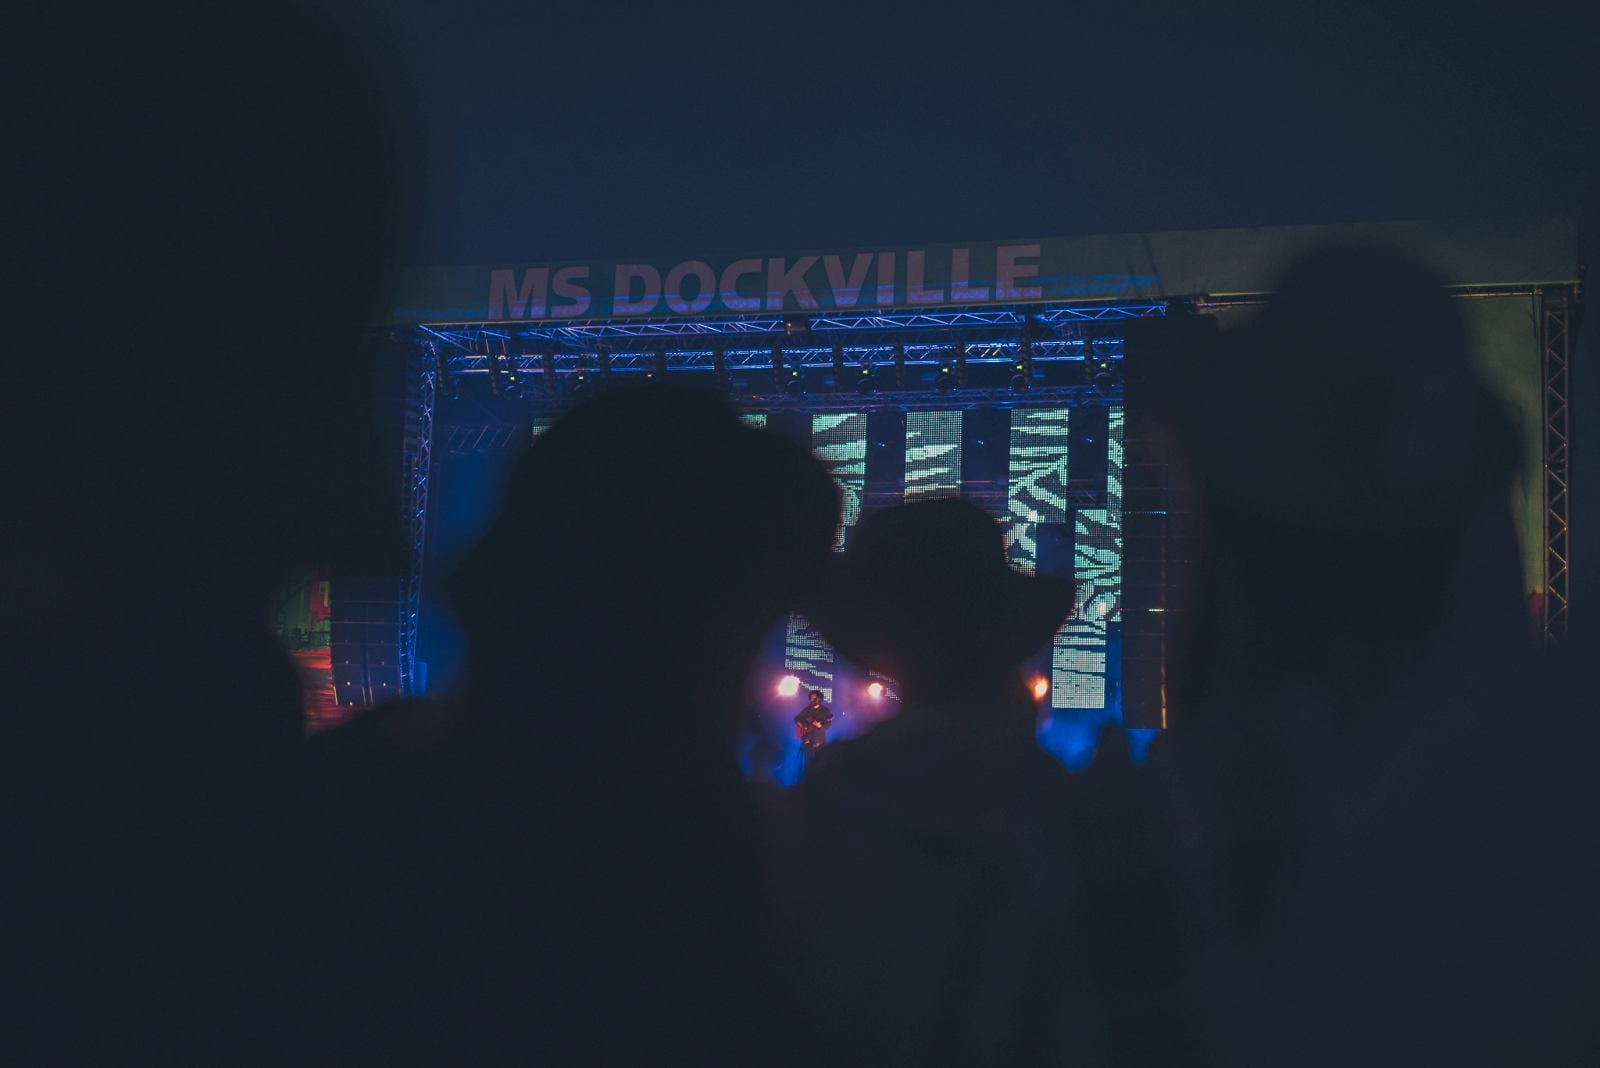 049 ms dockville 2015 jose gonzalez - MS Dockville 2015